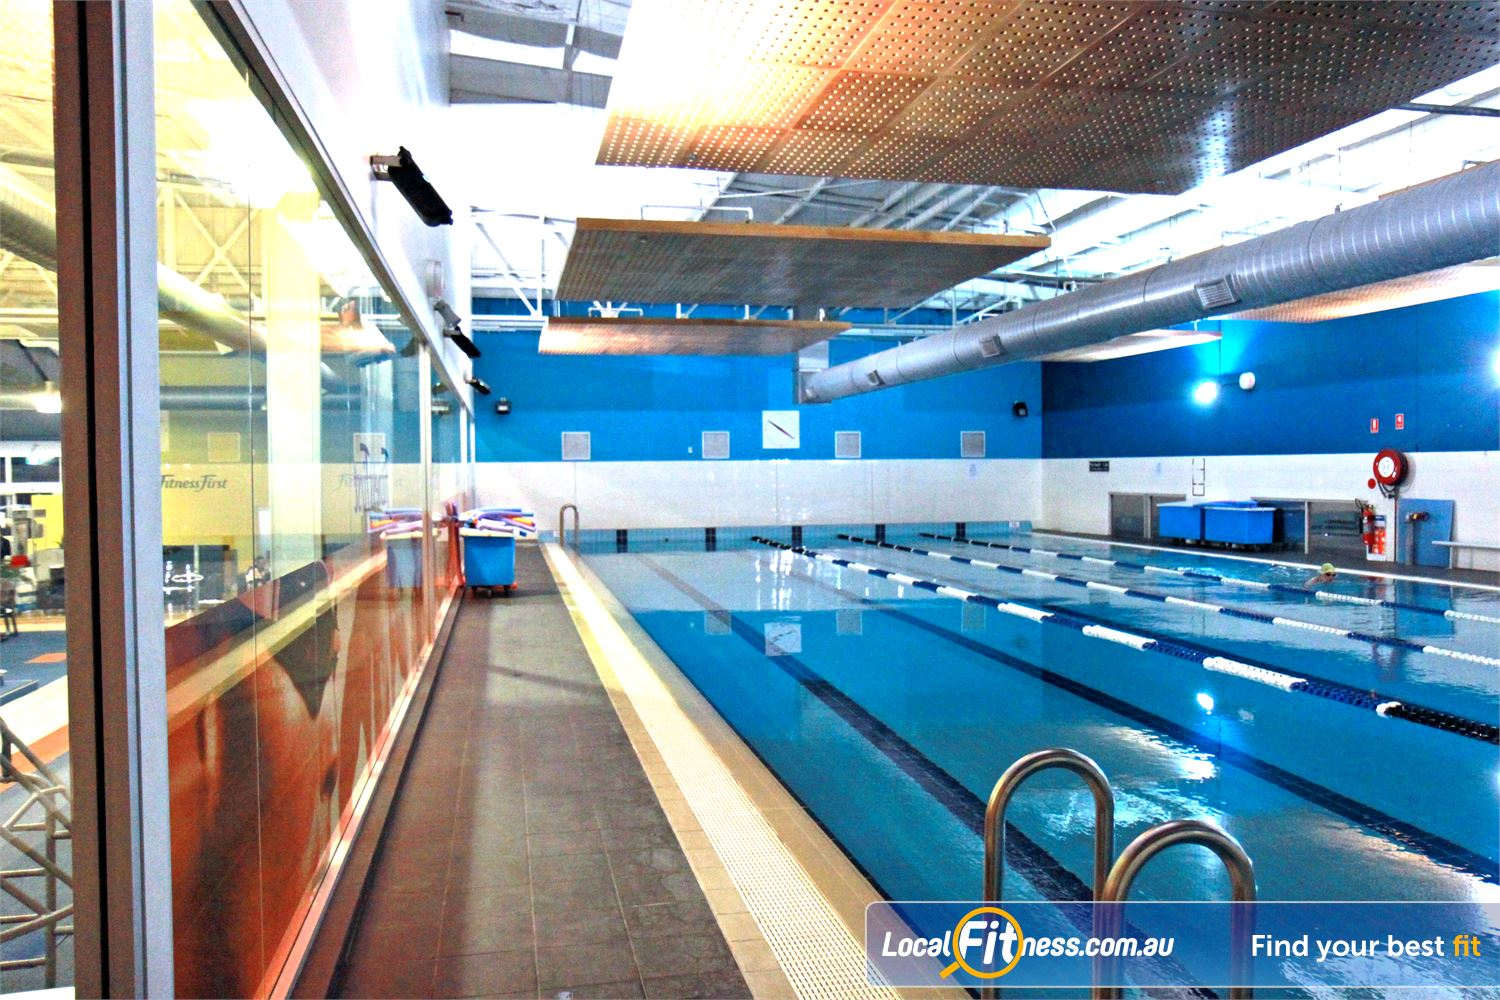 Fitness first rockdale gym free 1 day trial free 1 day - Fitness first gyms with swimming pools ...